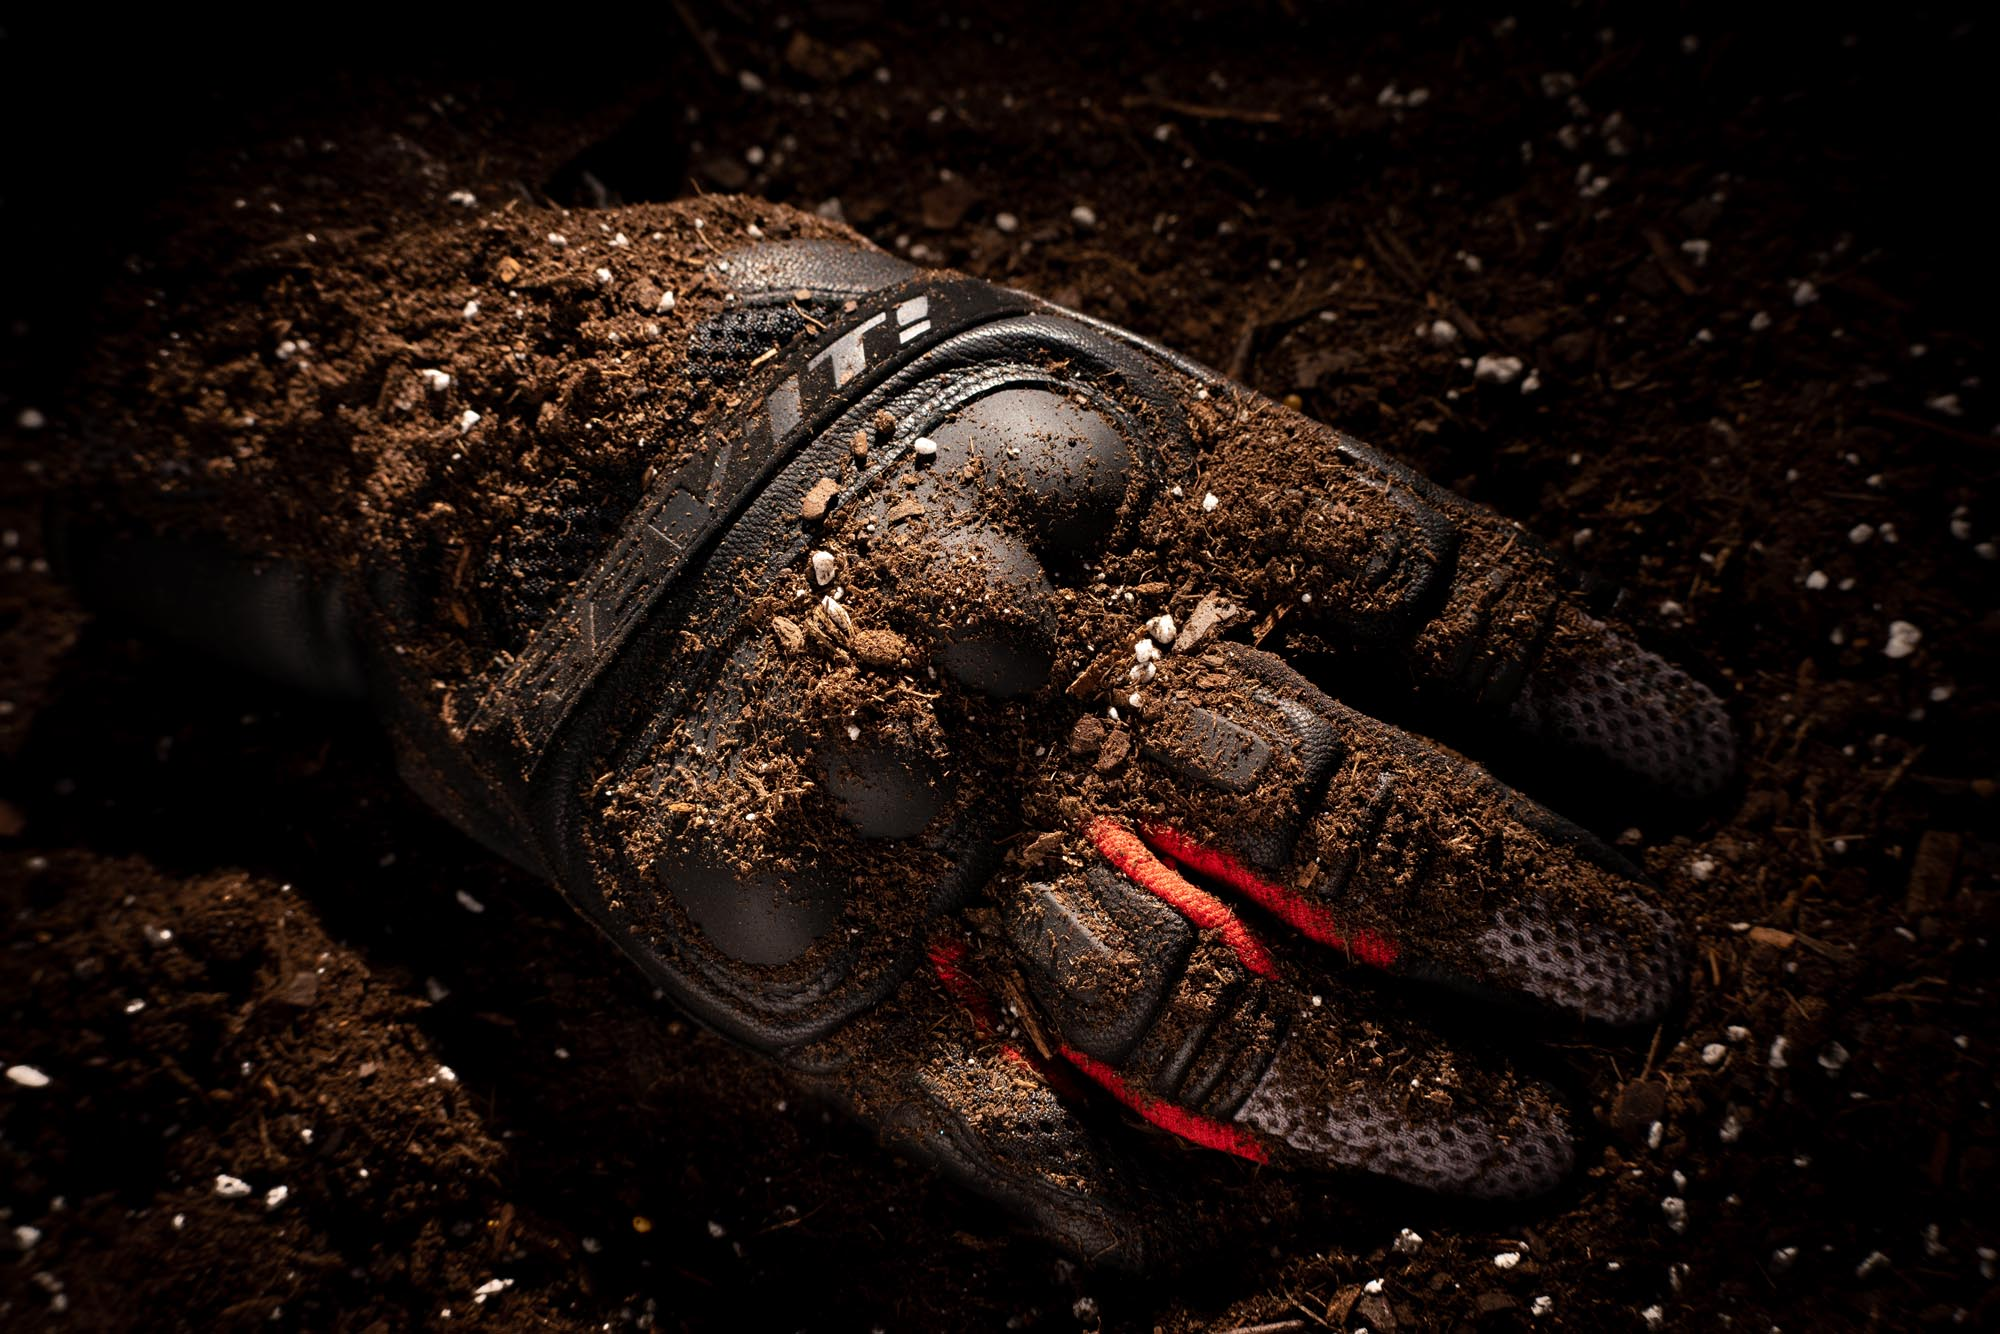 REV'IT Dirt 3 gloves covered in dirt